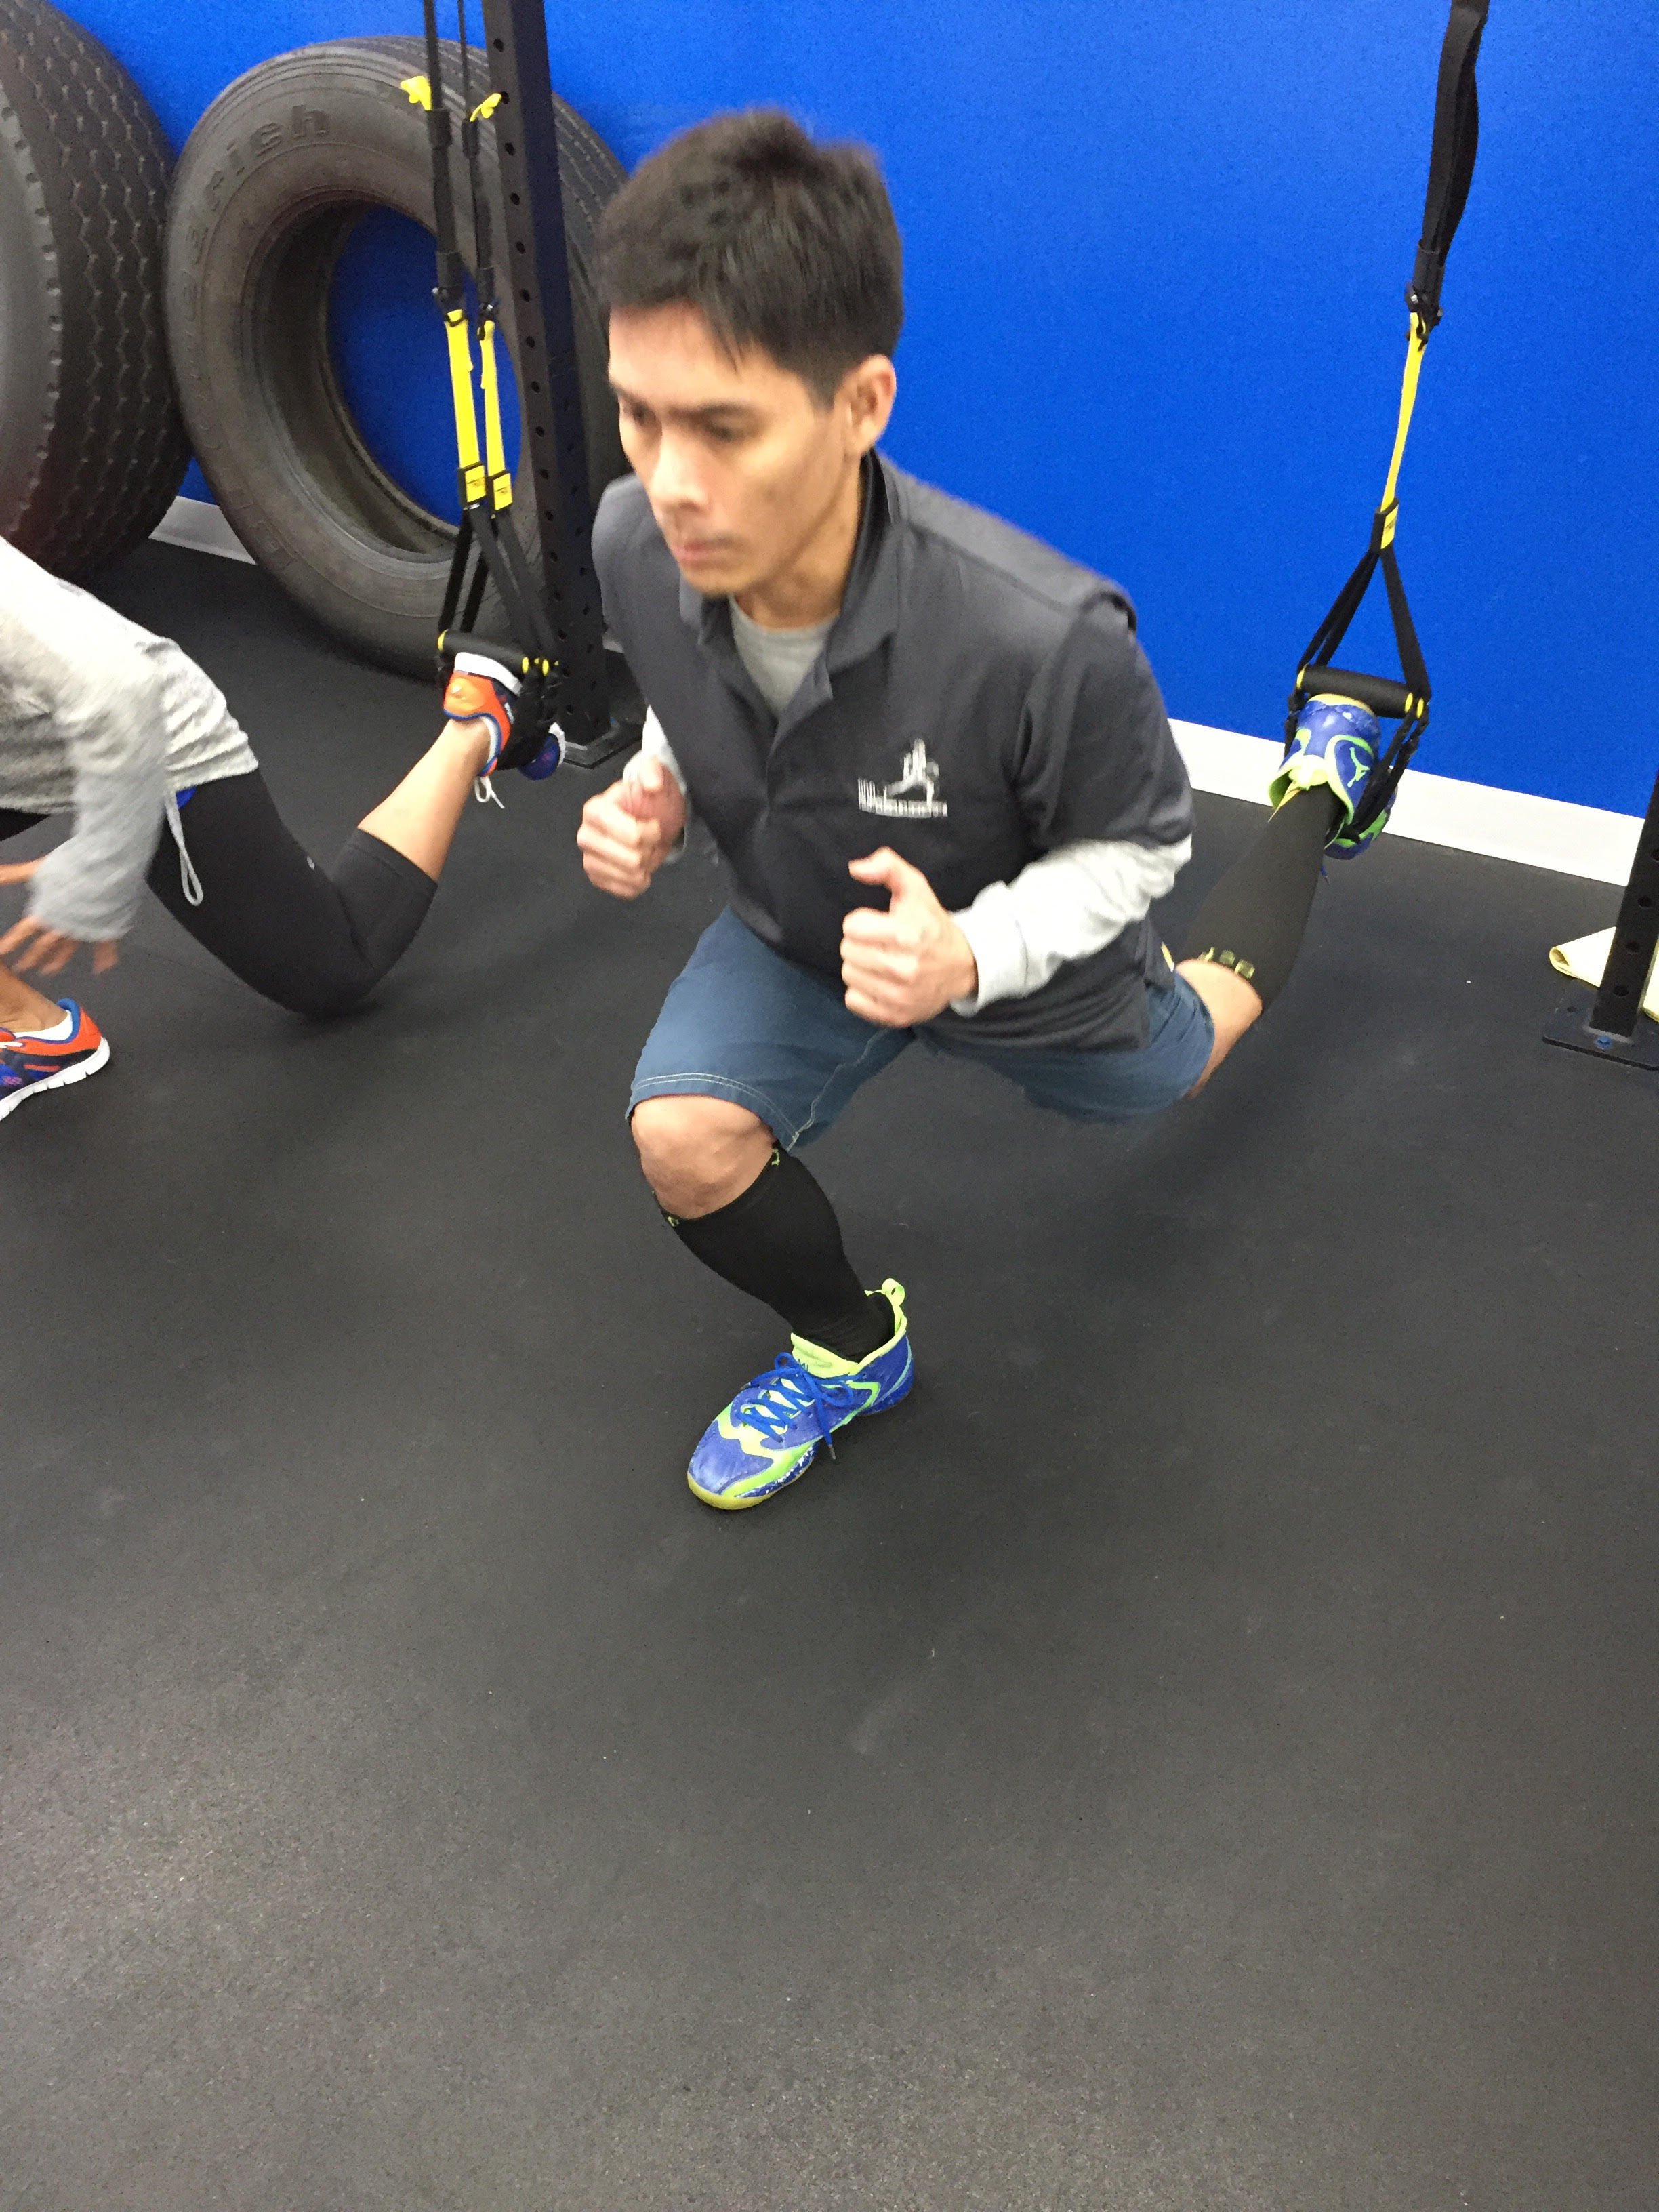 Lunge personal training functional movement Columbia Howard County MD.jpg